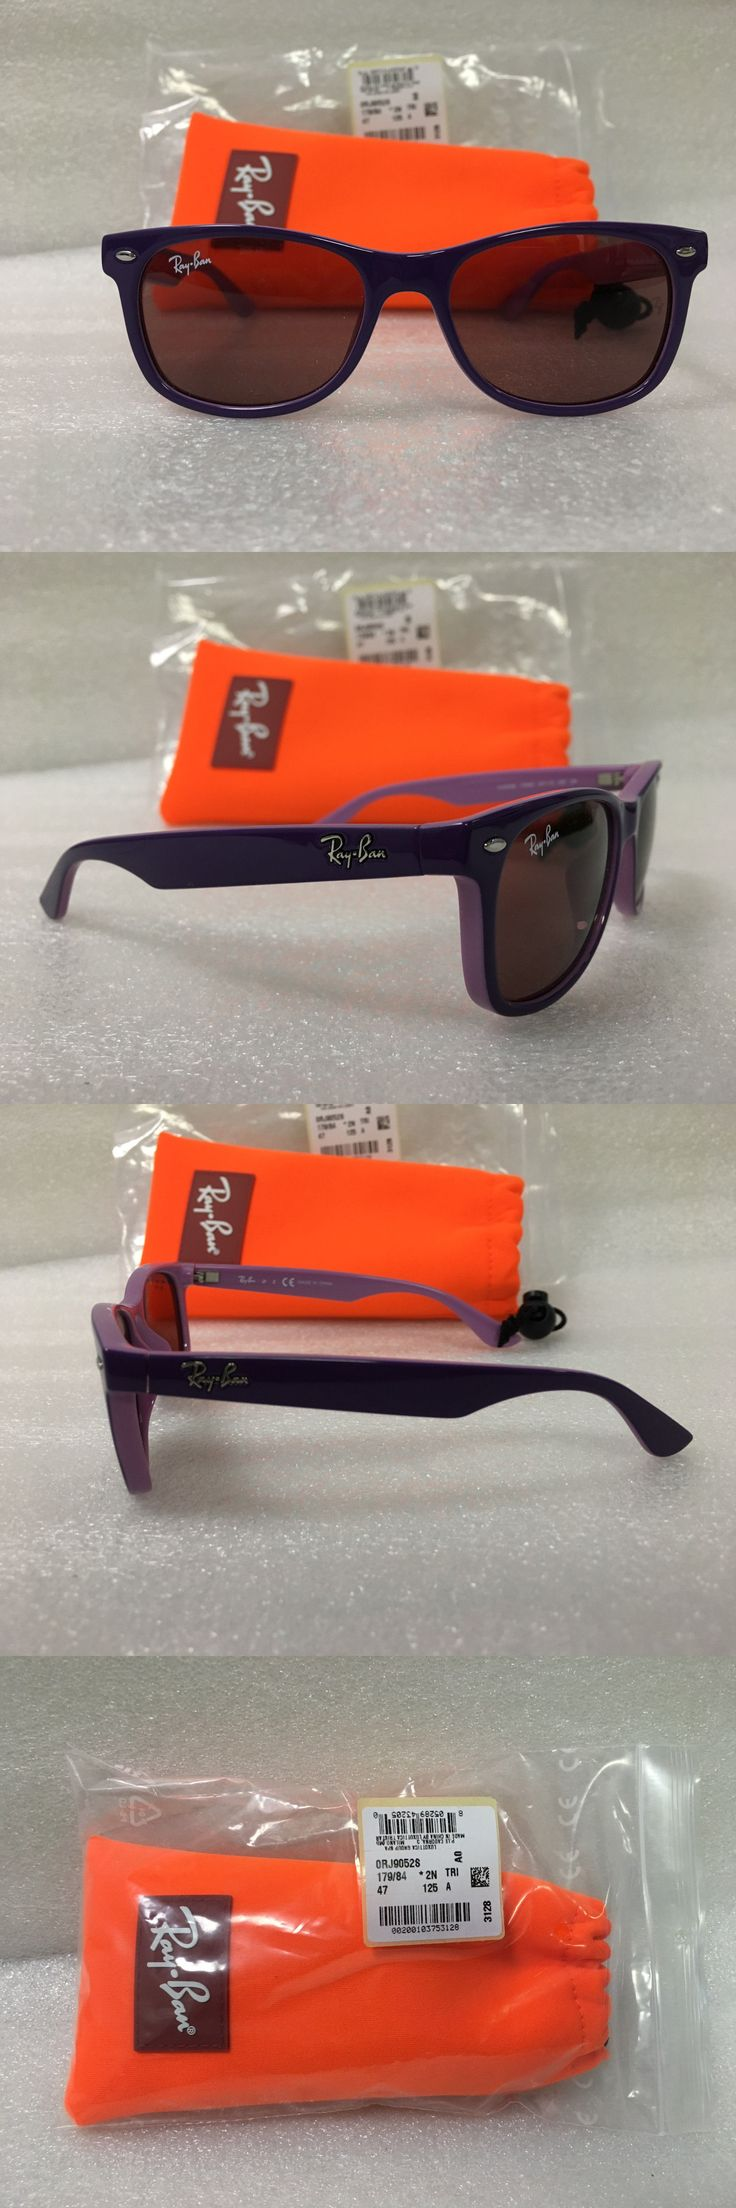 Sunglasses 122340: Ray-Ban Junior Rj9052s 47Mm 179 84 Lavander Pink Frame With Purple Lens -> BUY IT NOW ONLY: $50 on eBay!